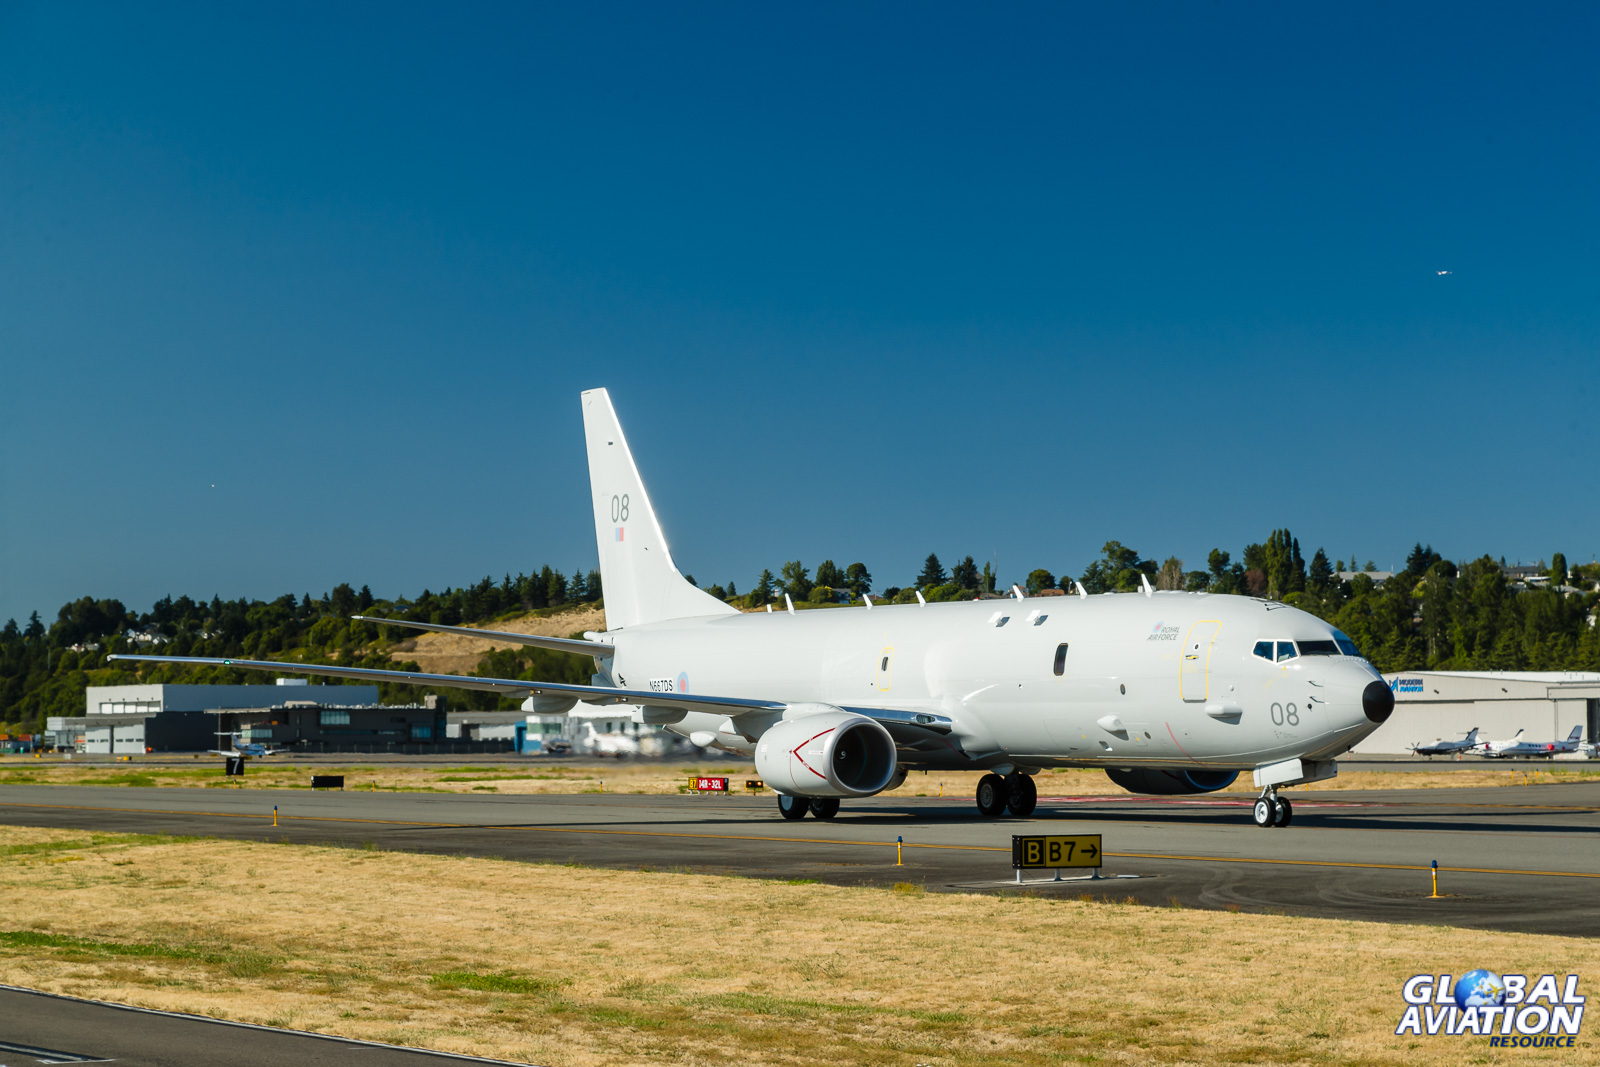 RAF P-8 taxies in after landing at Boeing Field - © Rob Edgcumbe - Global Aviation Resource